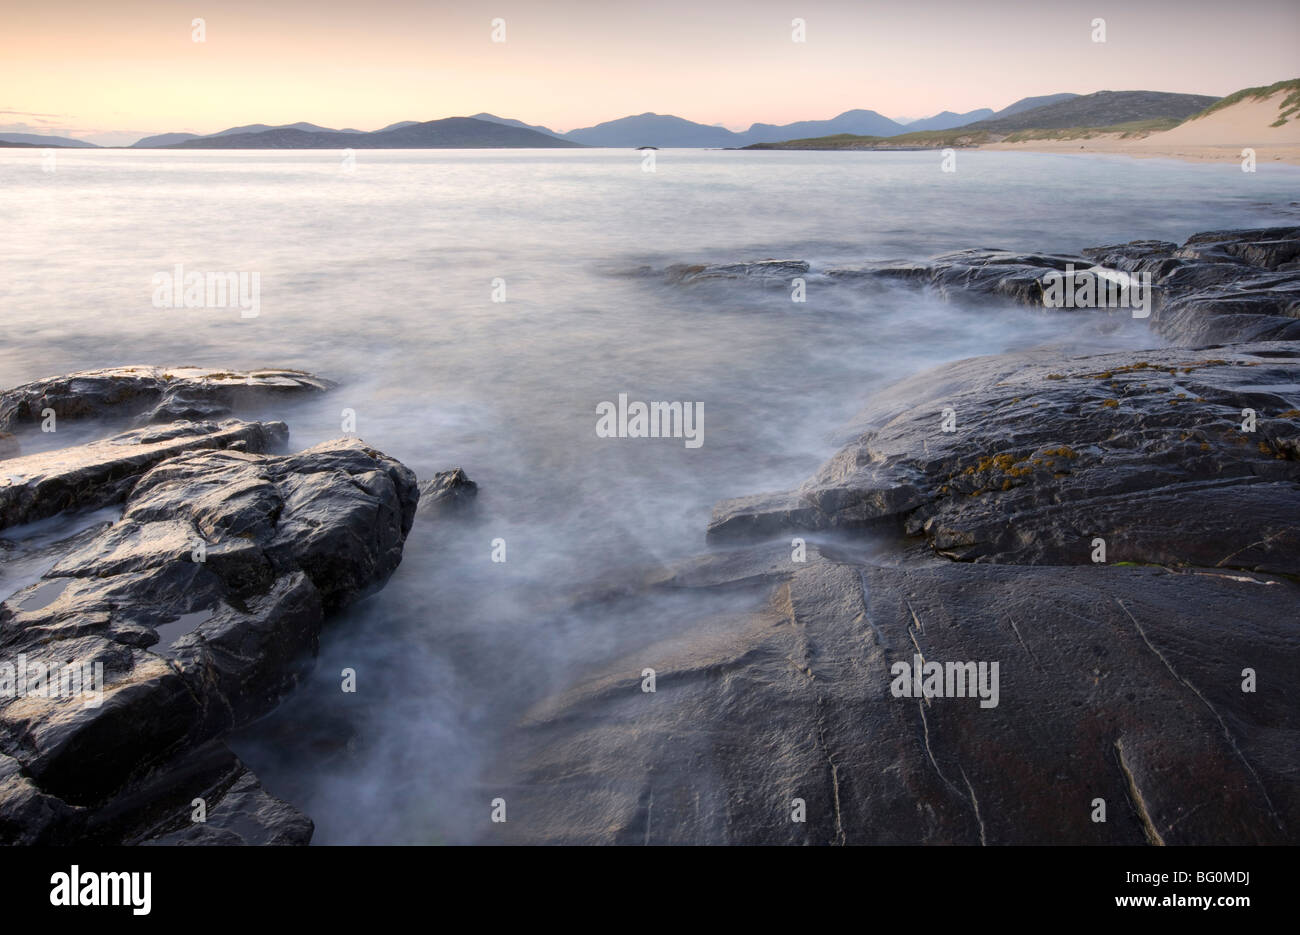 Taransay and North Harris from the rocky shore at Borve, Isle of Harris, Outer Hebrides, Scotland, UK - Stock Image